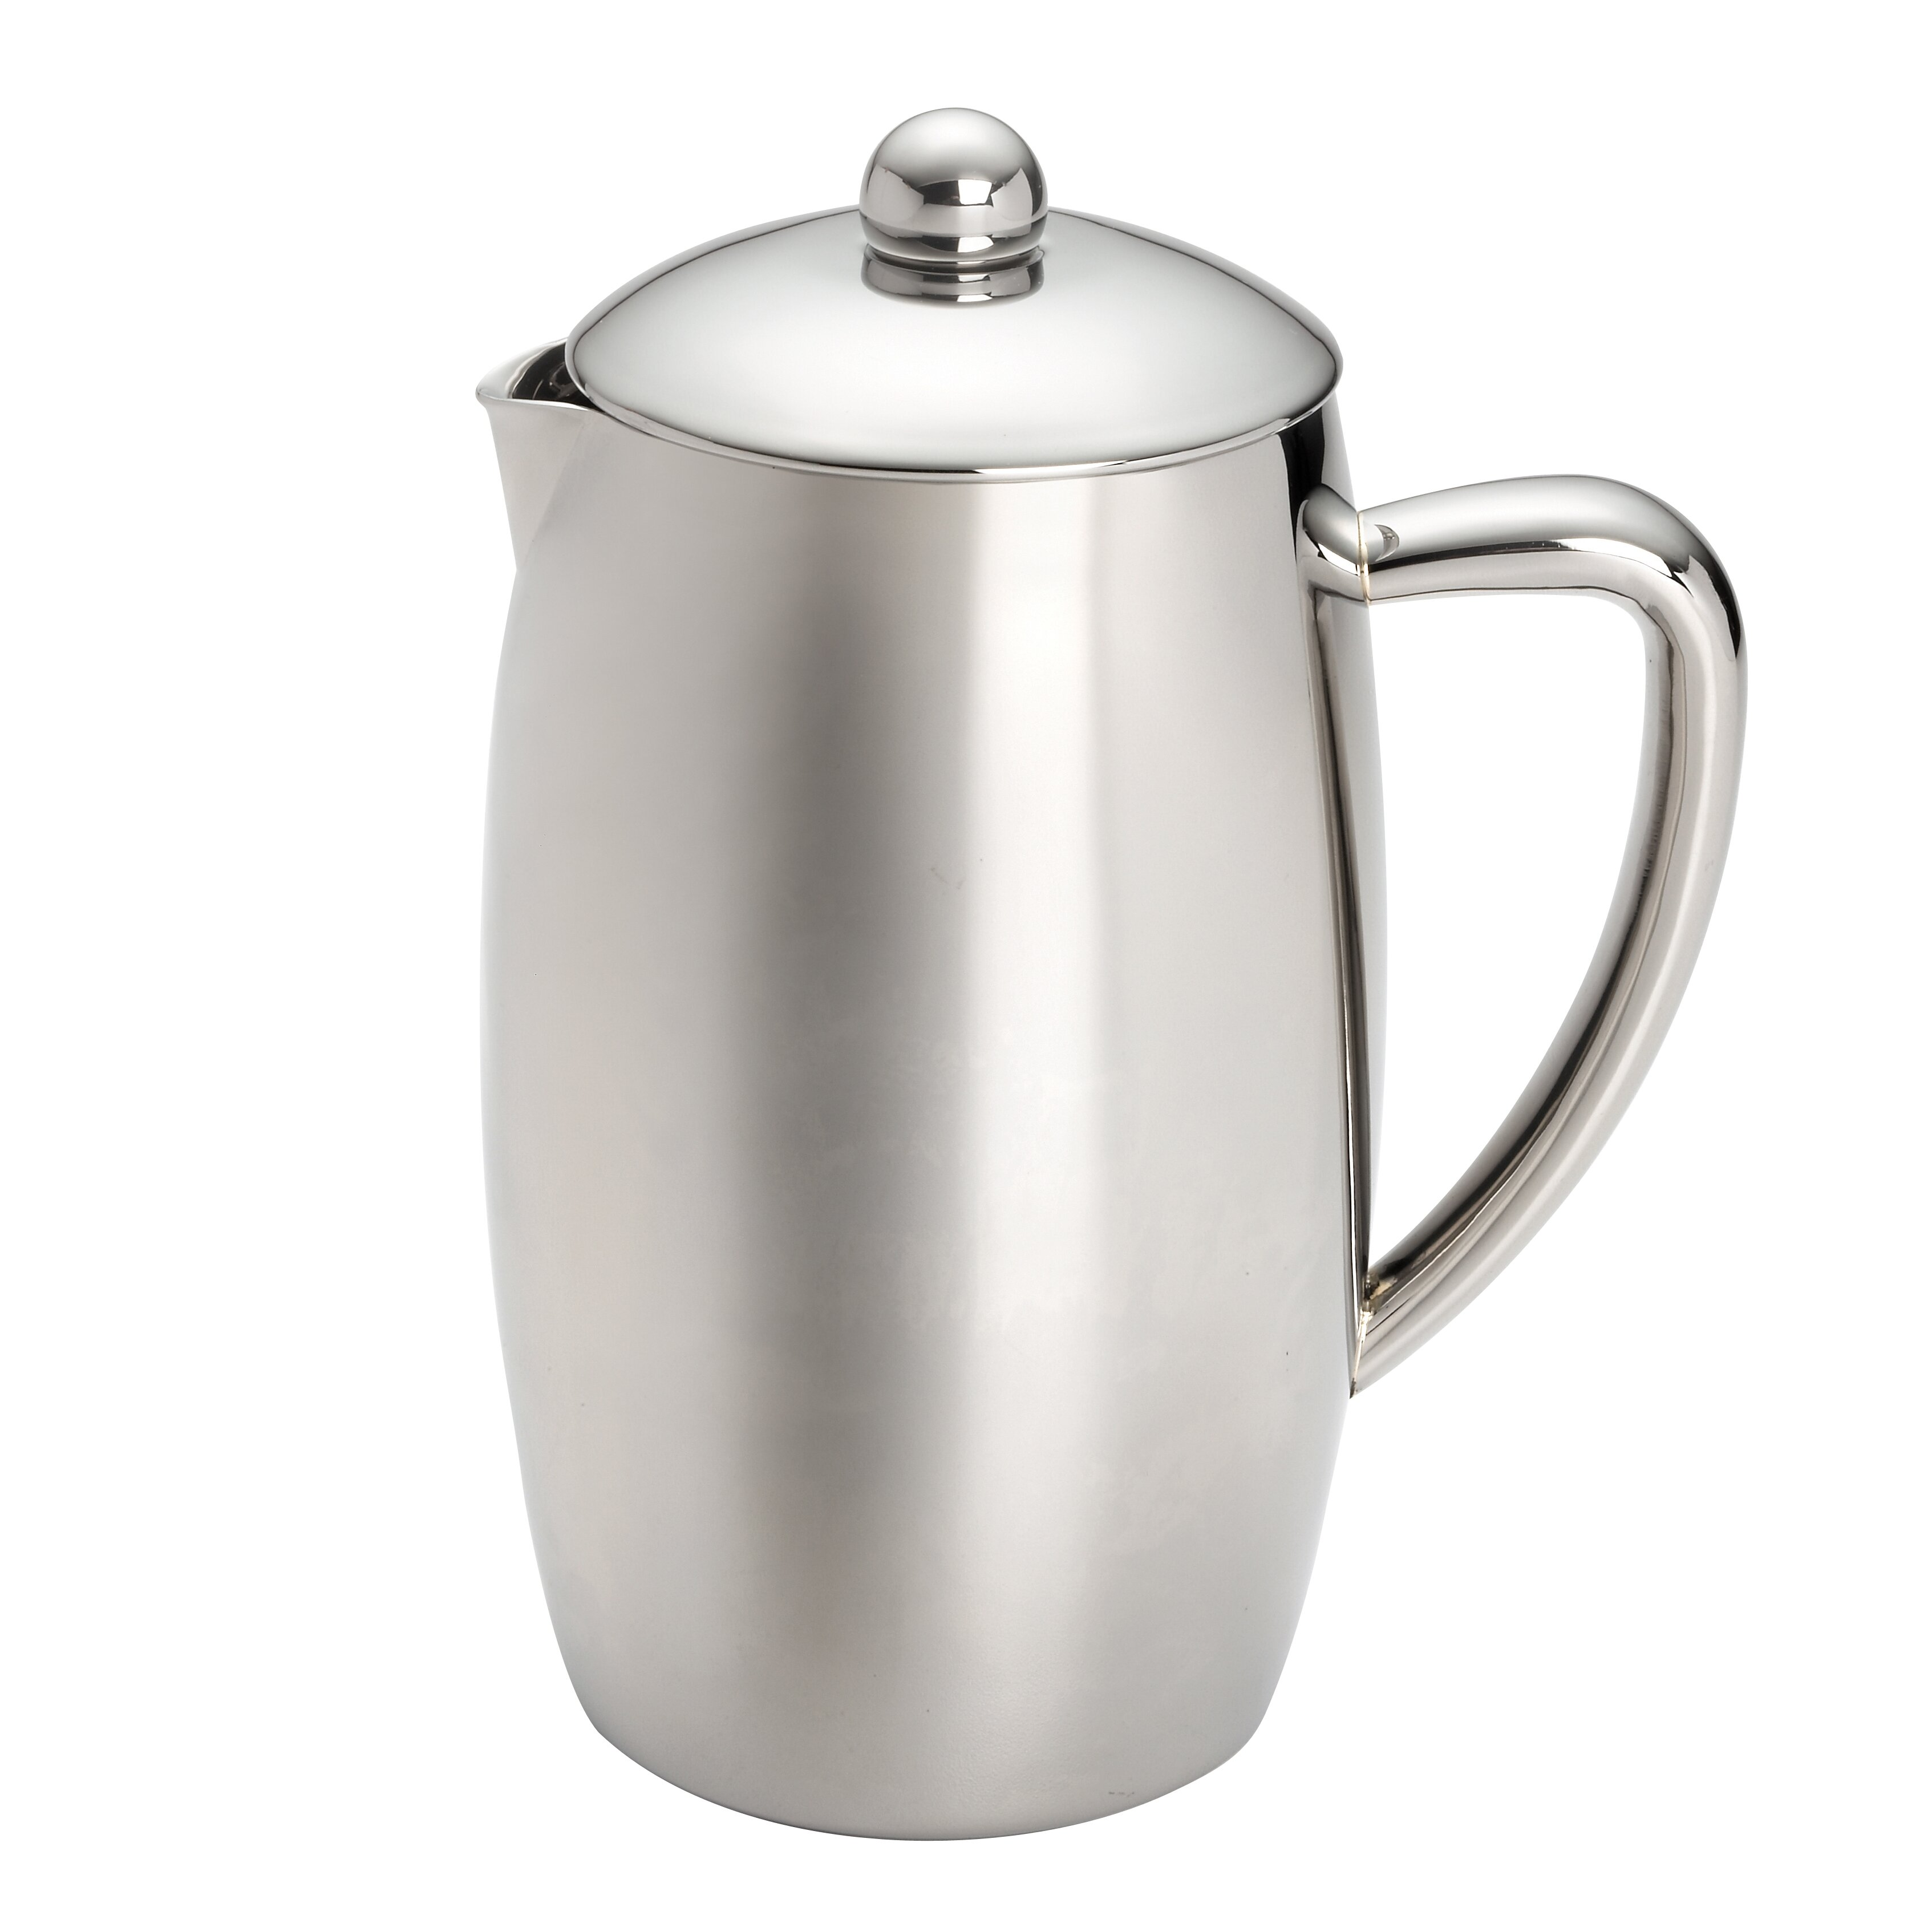 Grosche Madrid French Press Coffee And Tea Maker Bonjour Triomphe Insulated French Press Coffee Maker